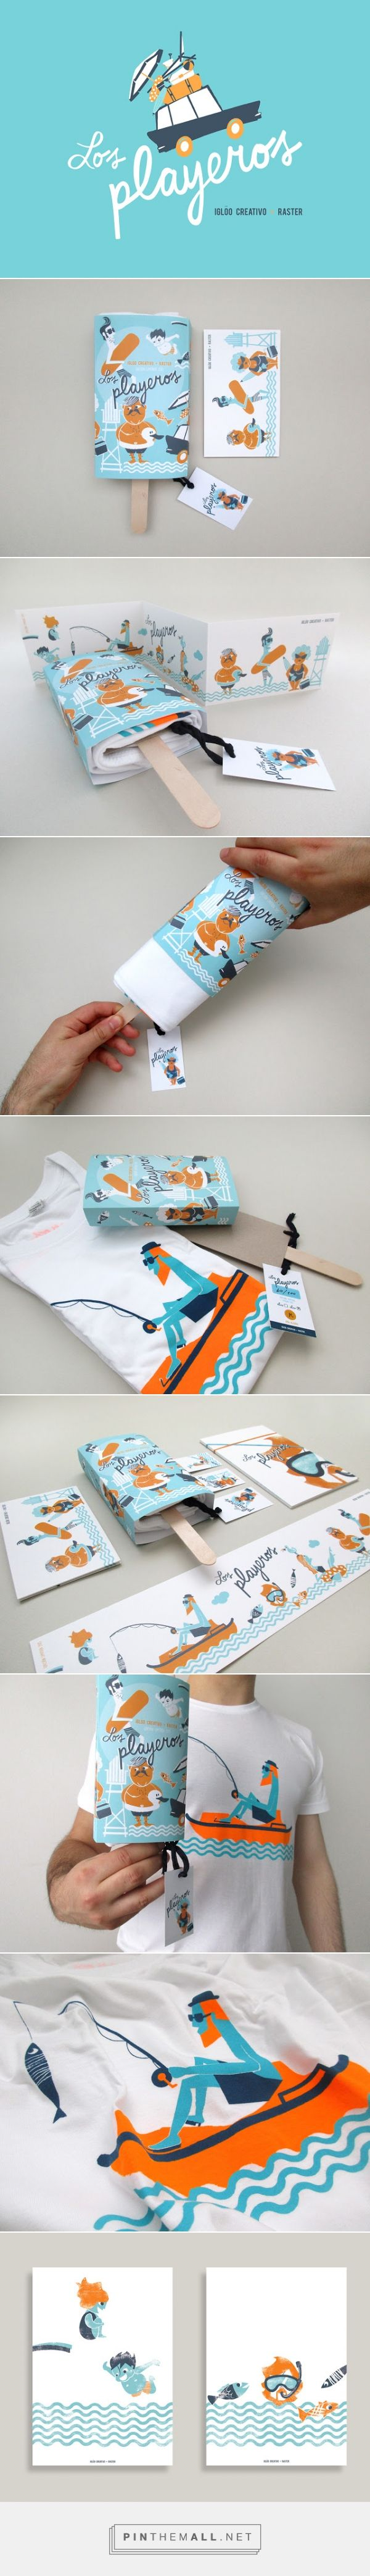 Los Playeros by Iglöo Creativo. A fun and creative #stationery suite. Check out the great T-shirt packaging!